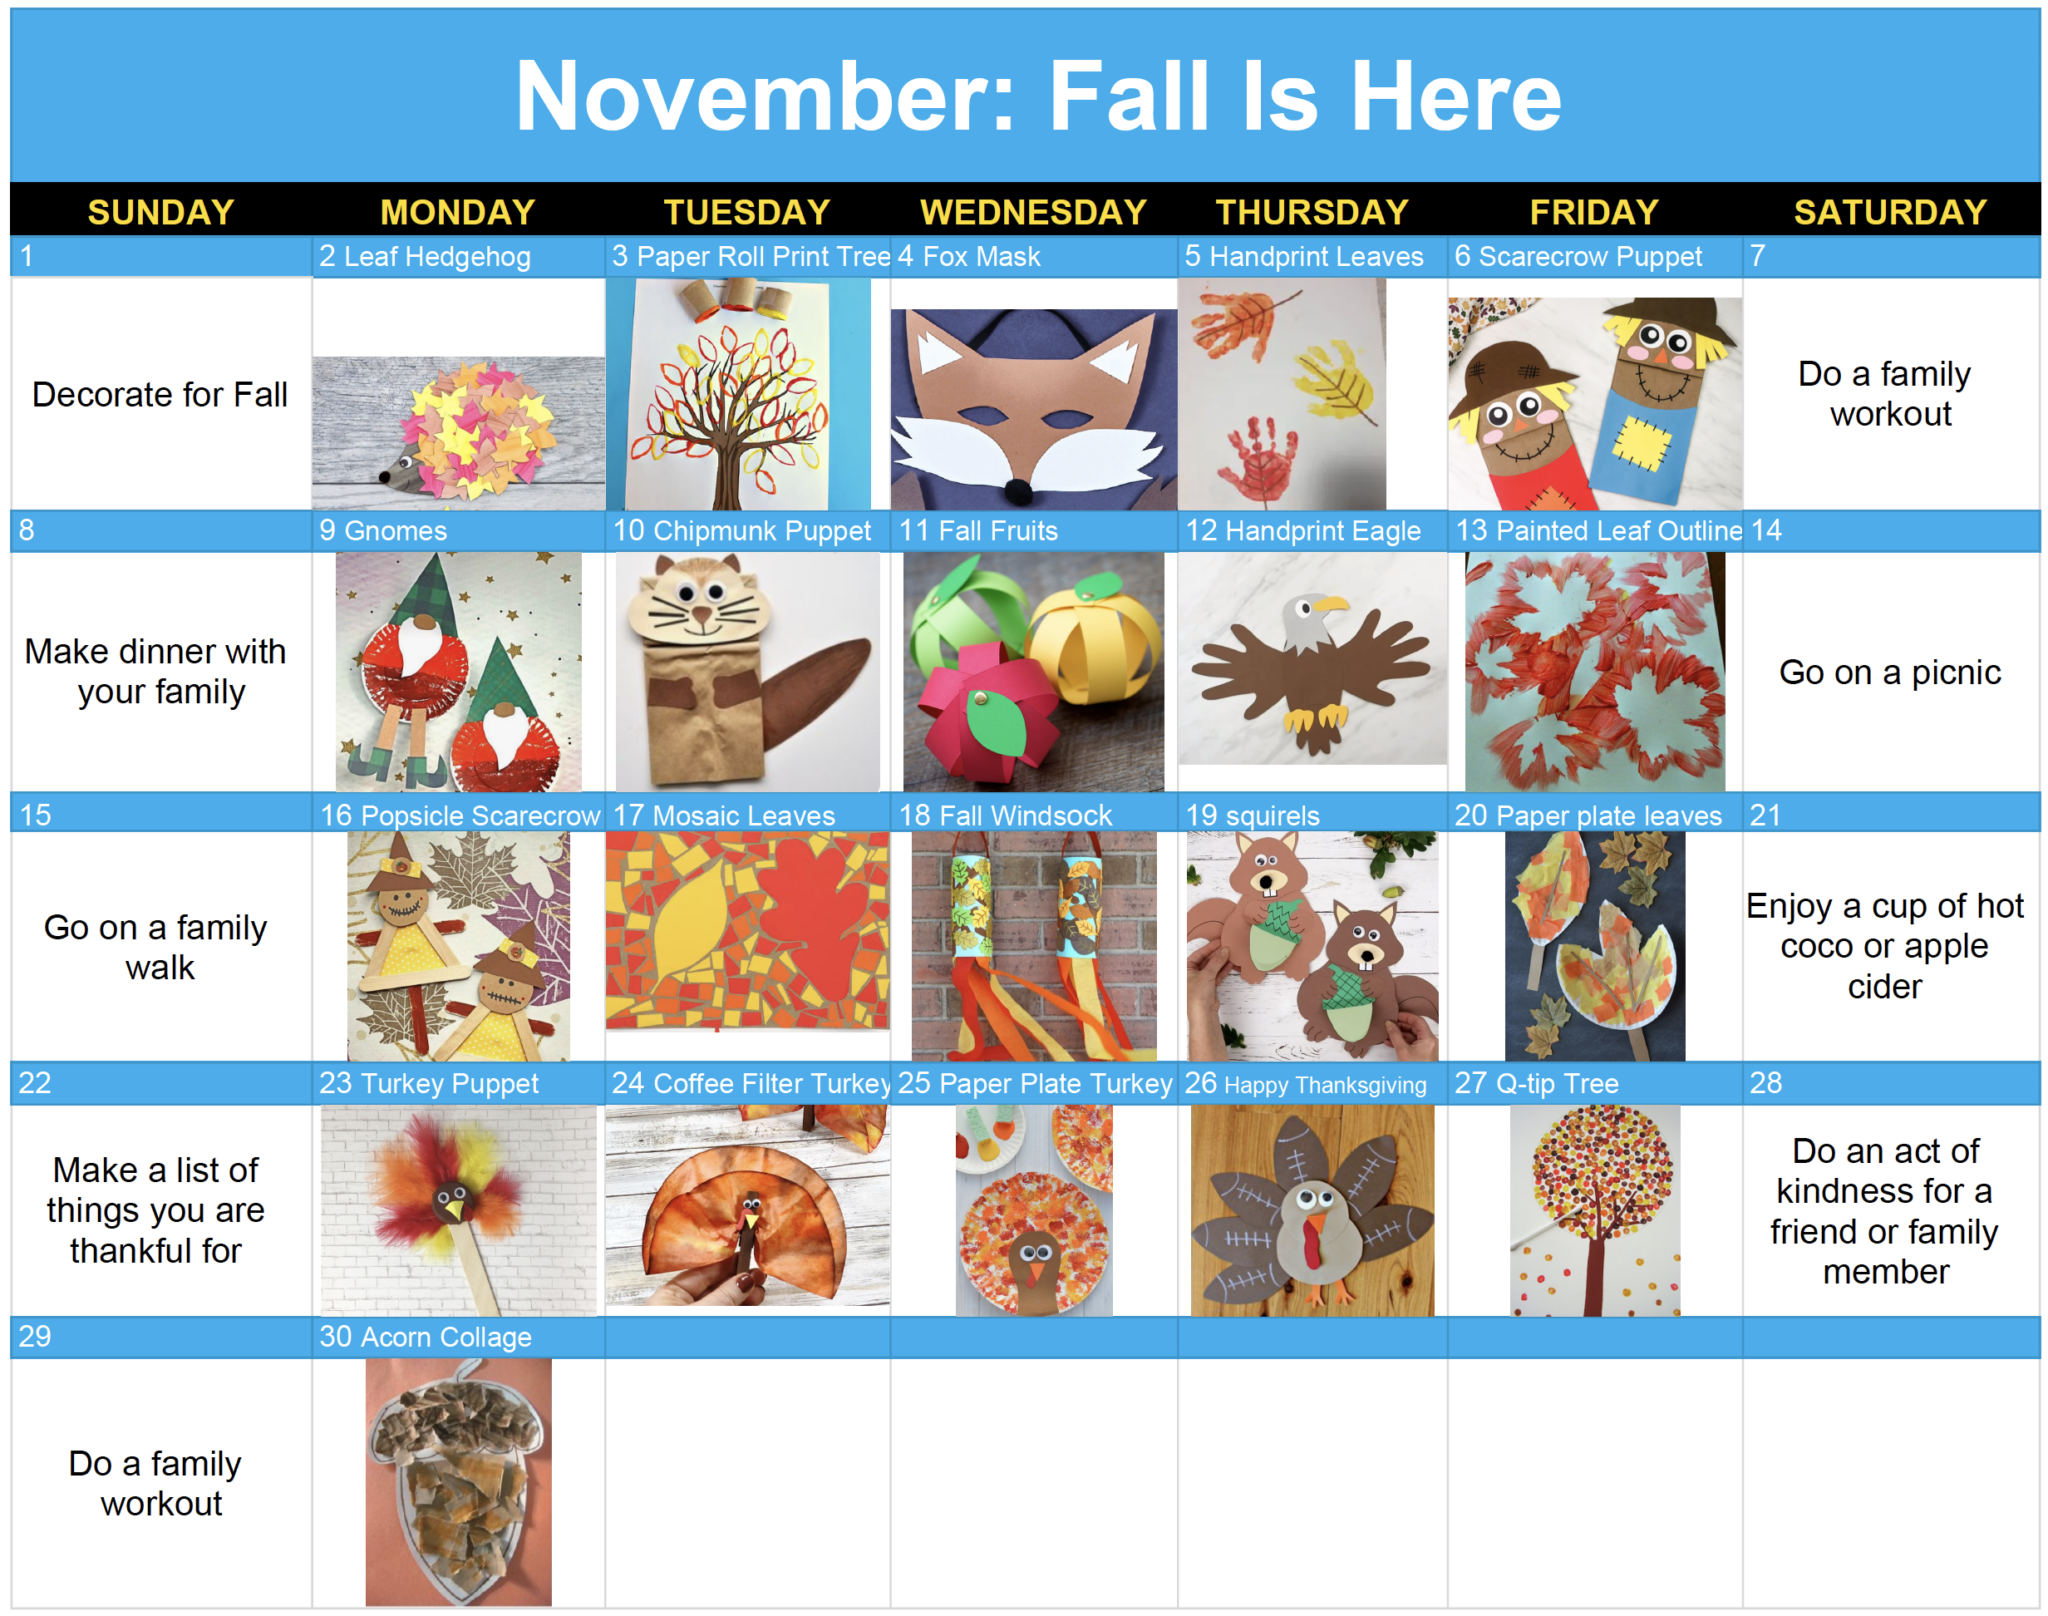 A calendar of November 2020 showing different crafts to do each day